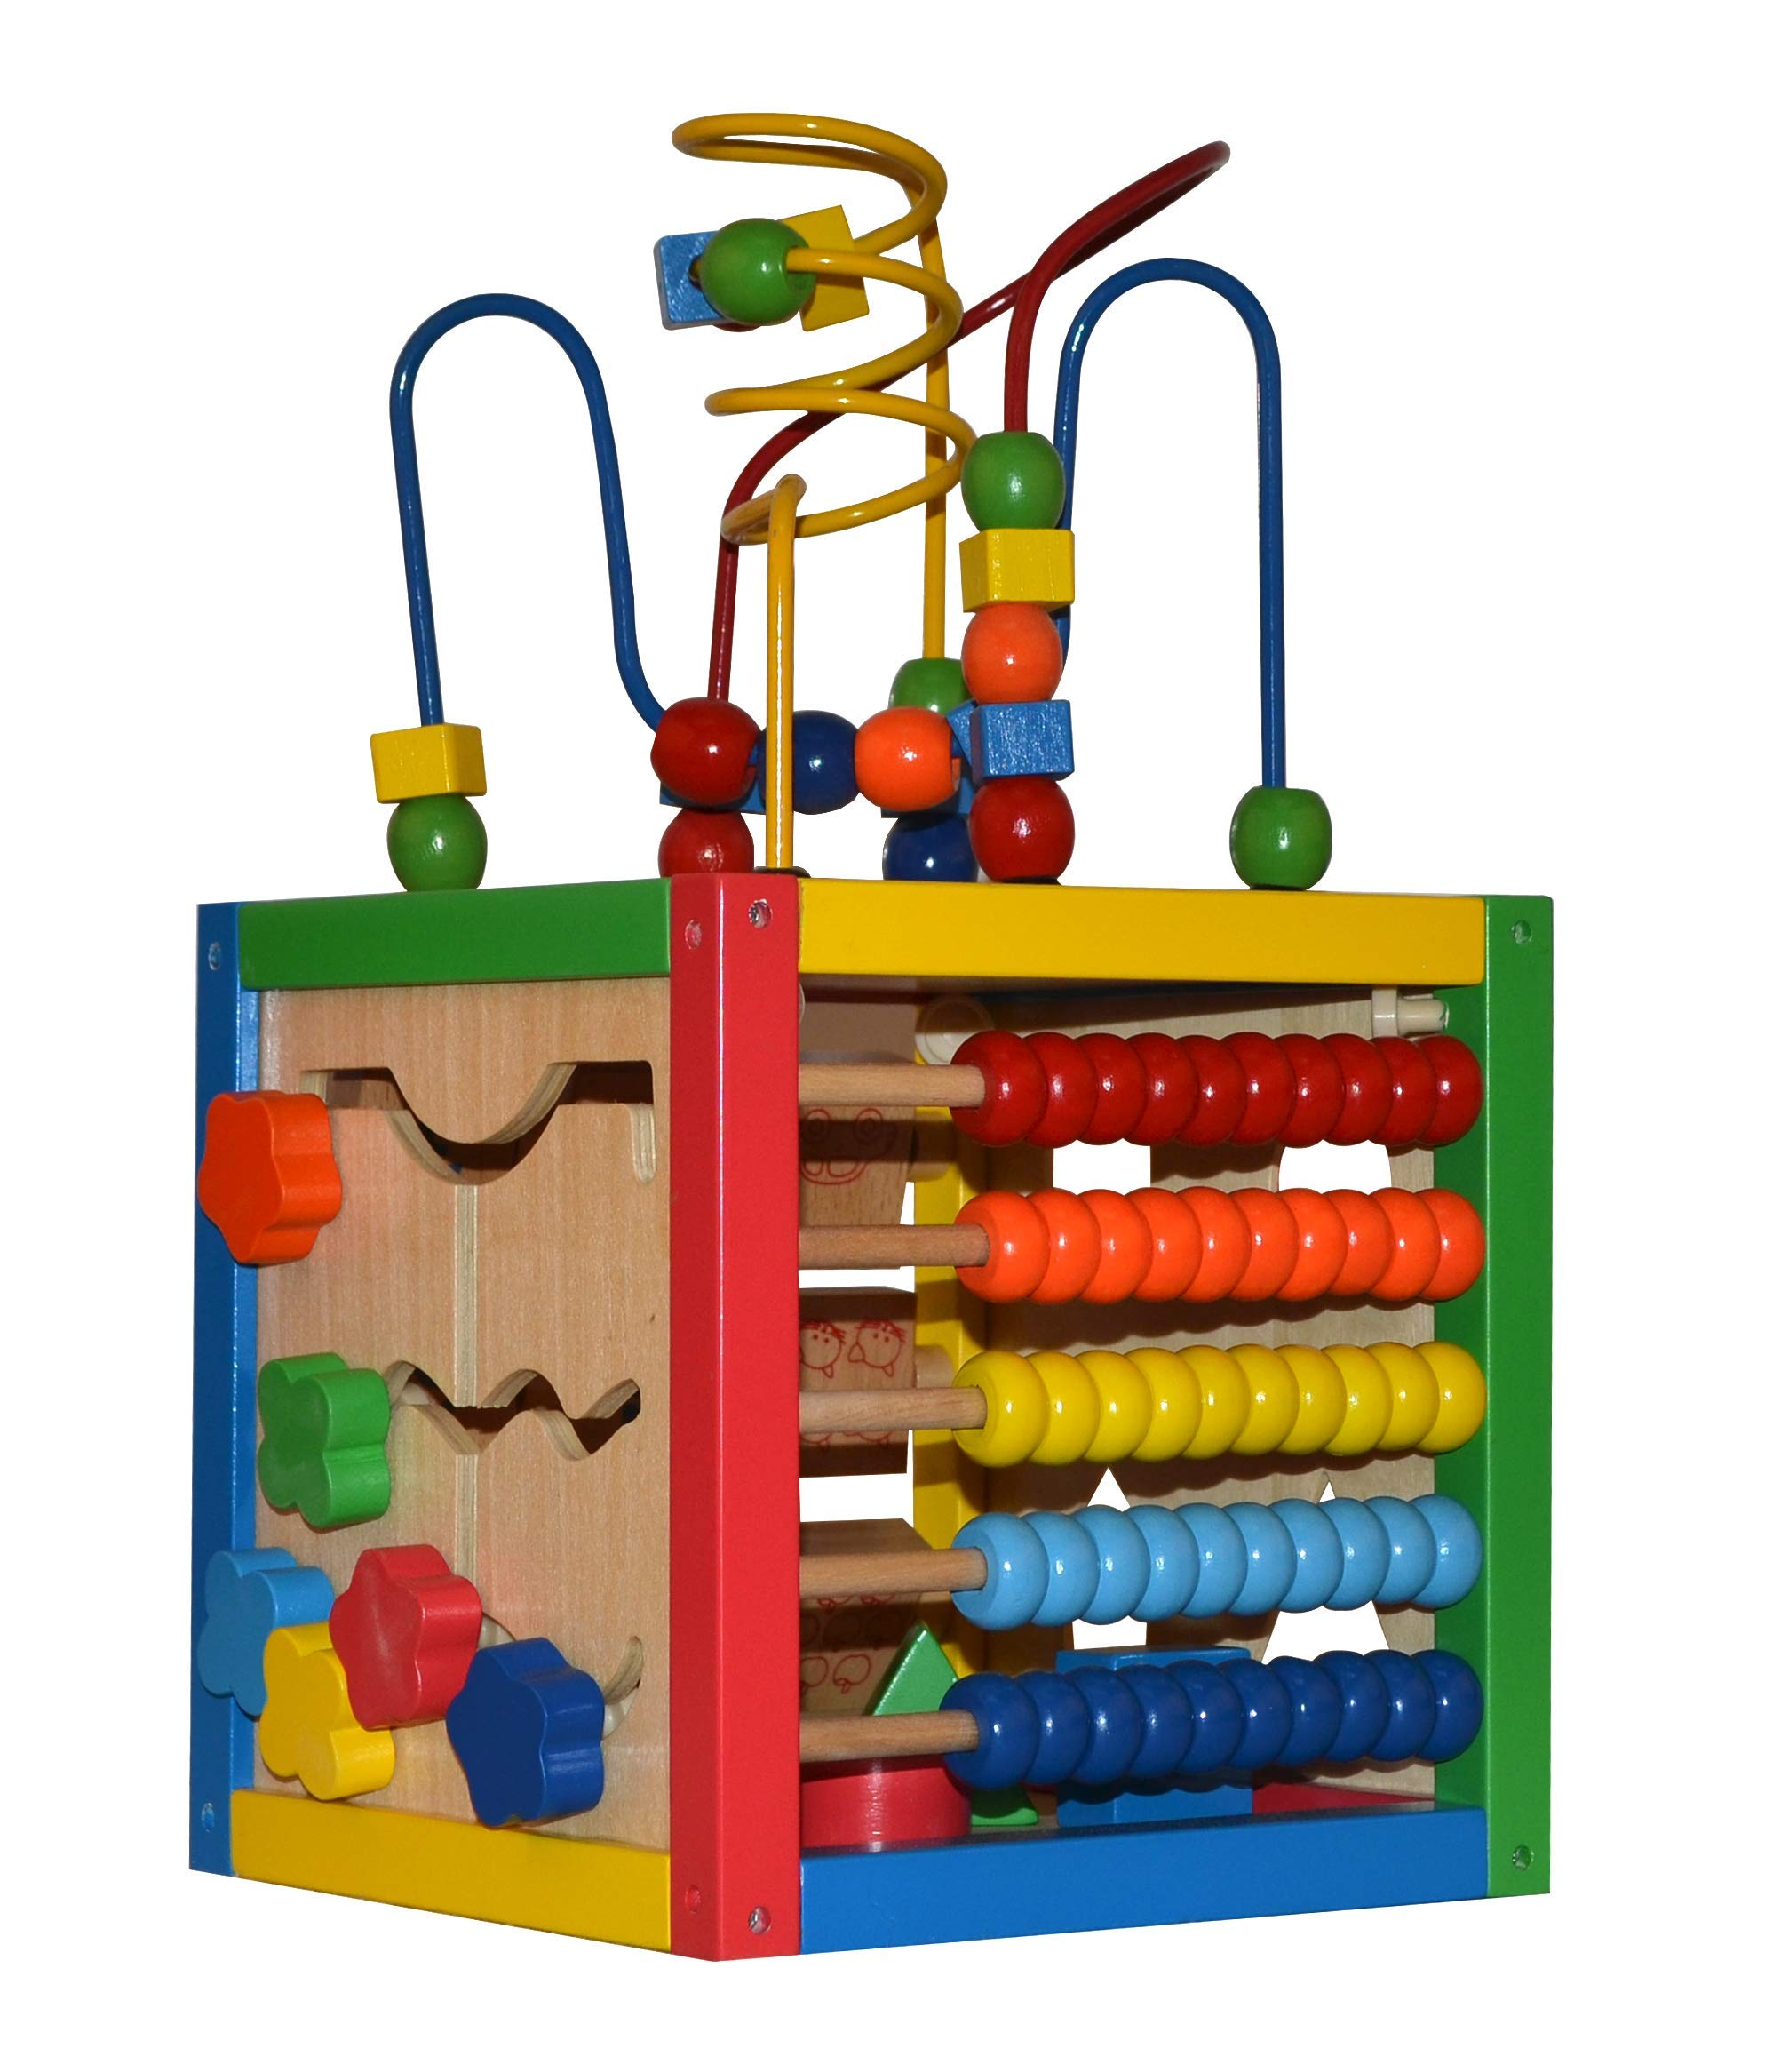 Play22 Activity Cube with Bead Maze - 5 in 1 Baby Activity Cube Includes Shape Sorter, Abacus Counting Beads, Counting Numbers, Sliding Shapes, Removable Bead Maze - My First Baby Toys - Original by Play22